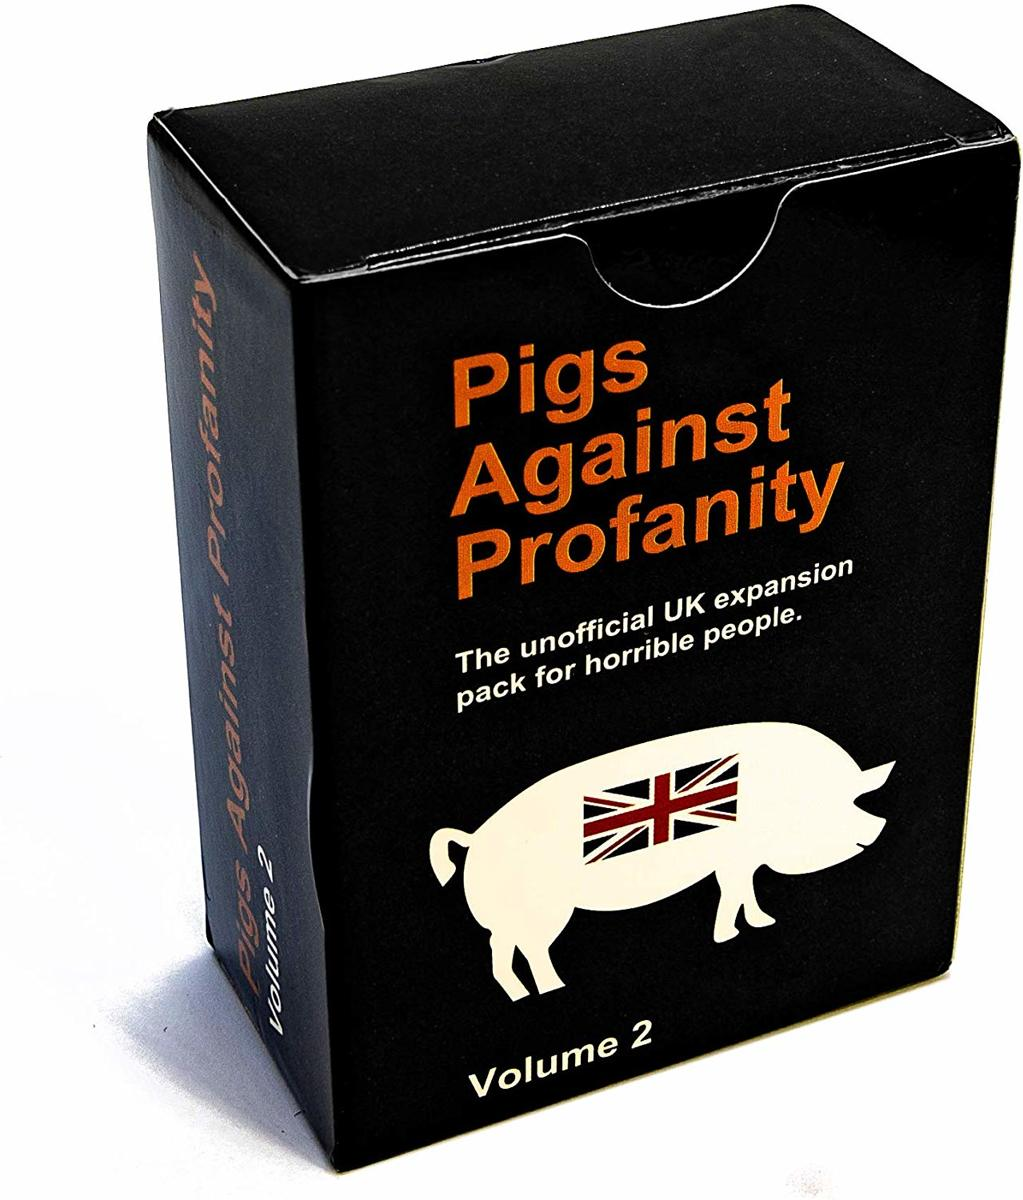 Volume 1 Pigs Against Profanity The unofficial UK card expansion pack for no